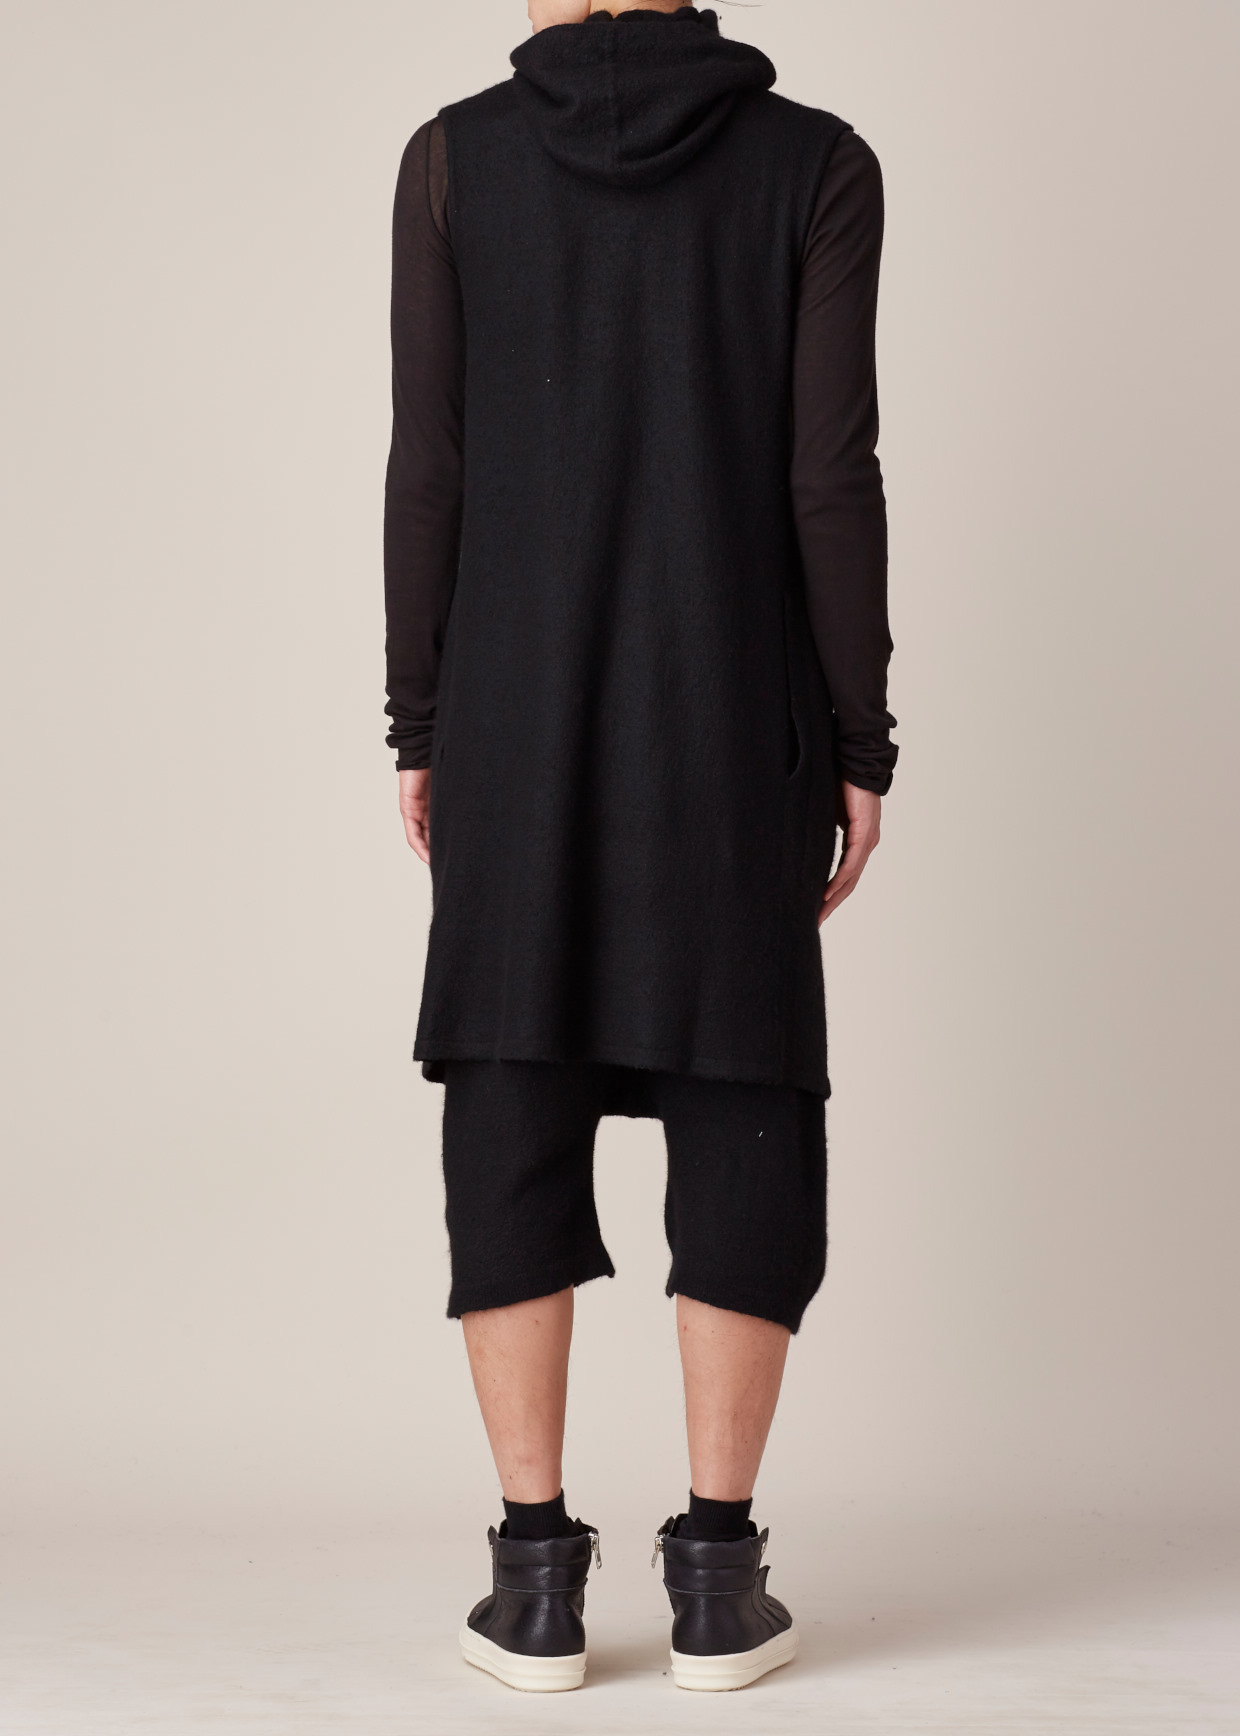 Rick owens Black Sleeveless Hooded Cardigan in Black for Men | Lyst